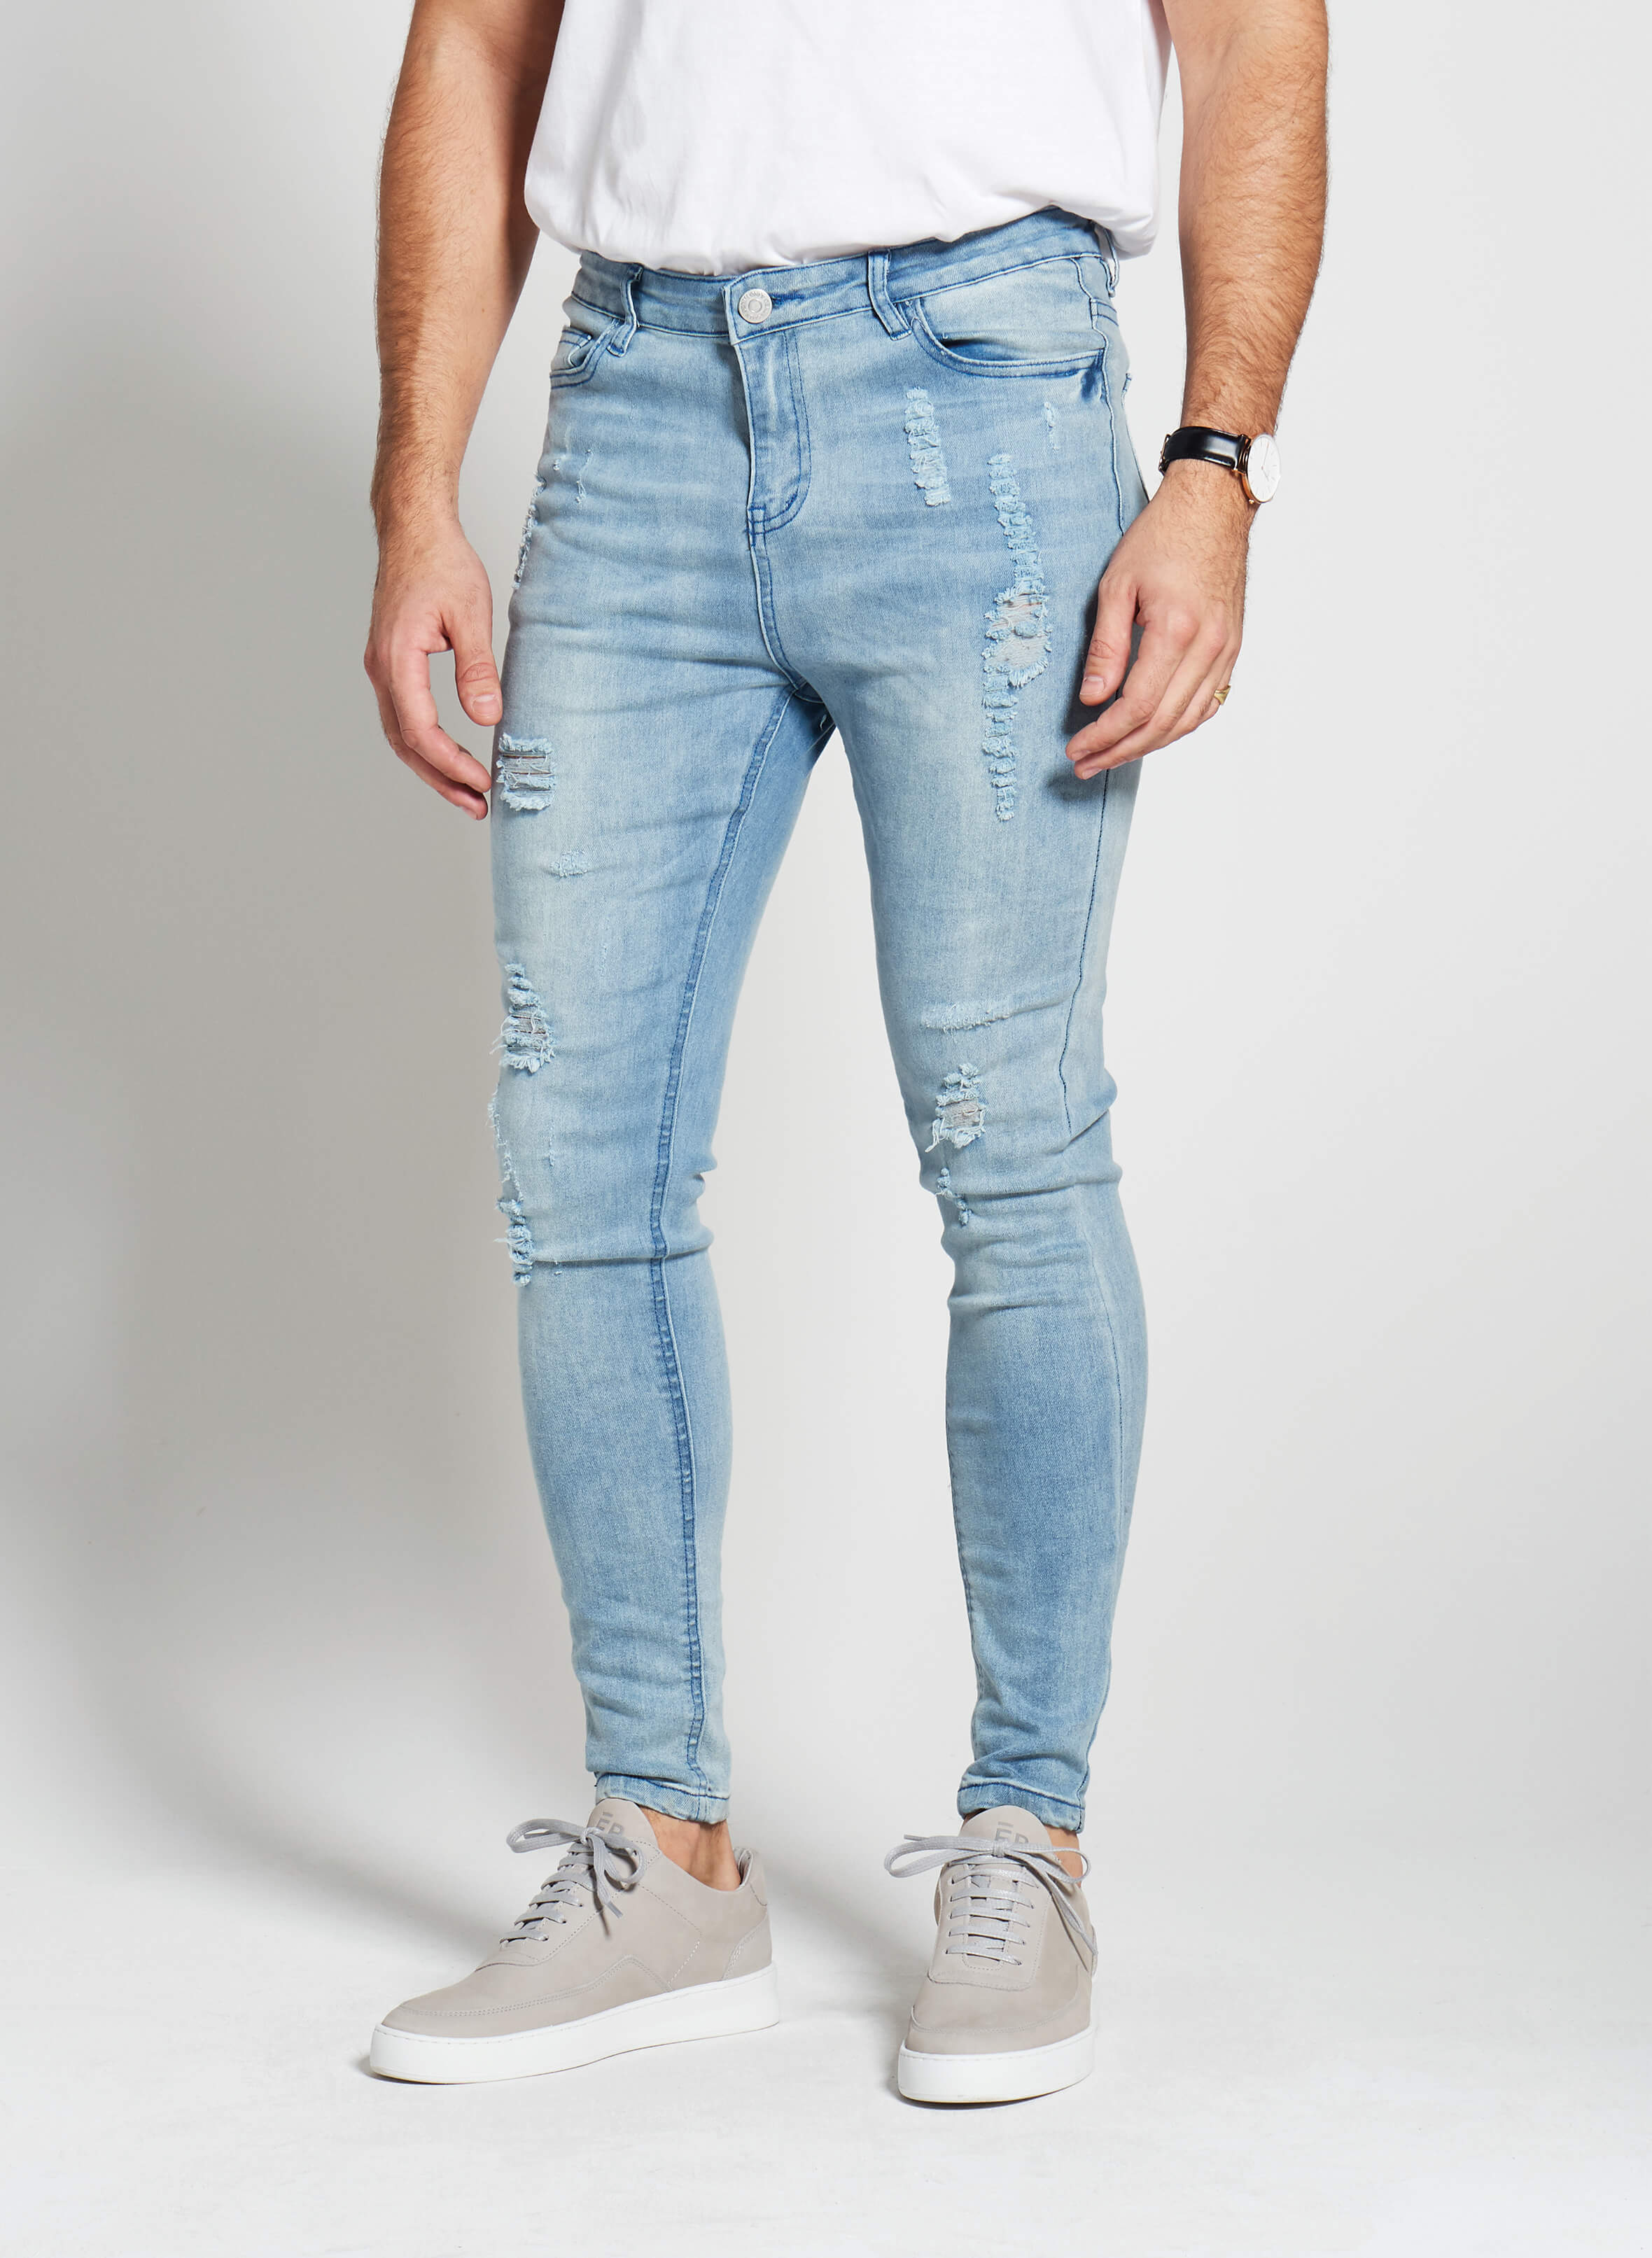 Denim Only® Spray On Jeans - Distressed Light Blue Wash - Spray On